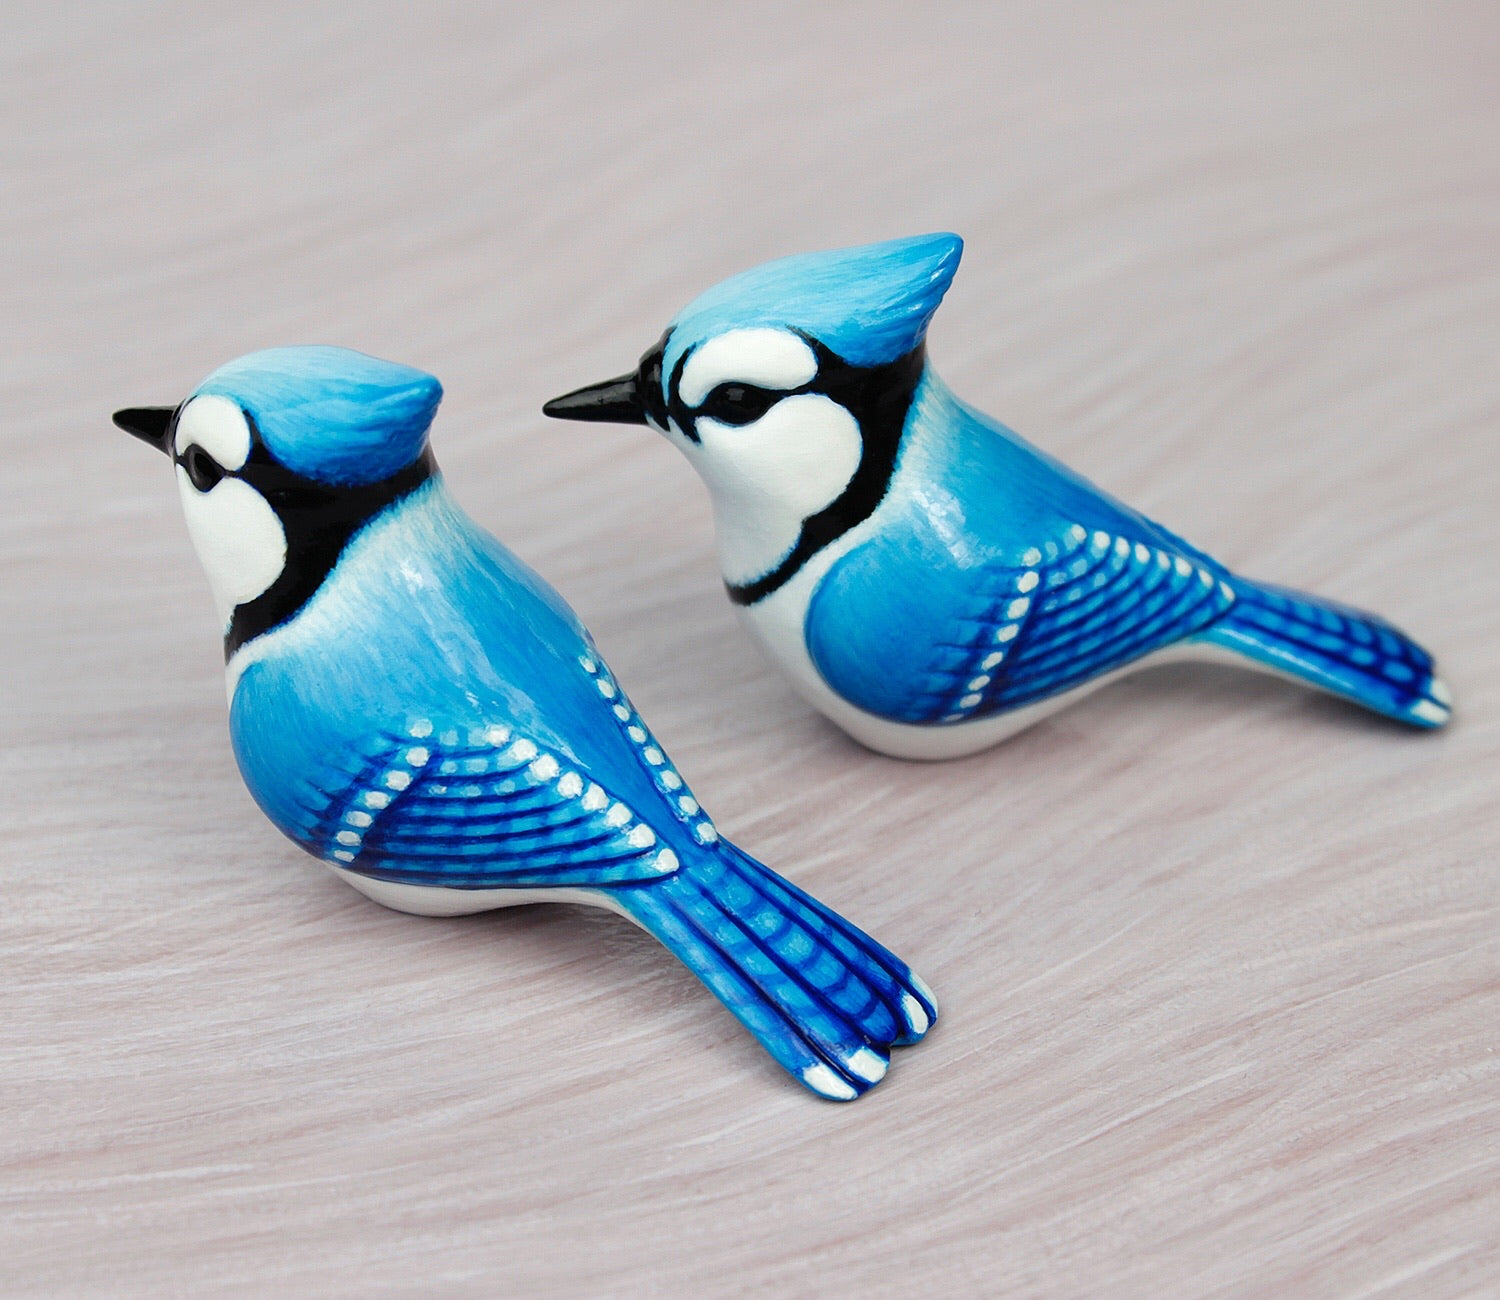 Blue jay figurines